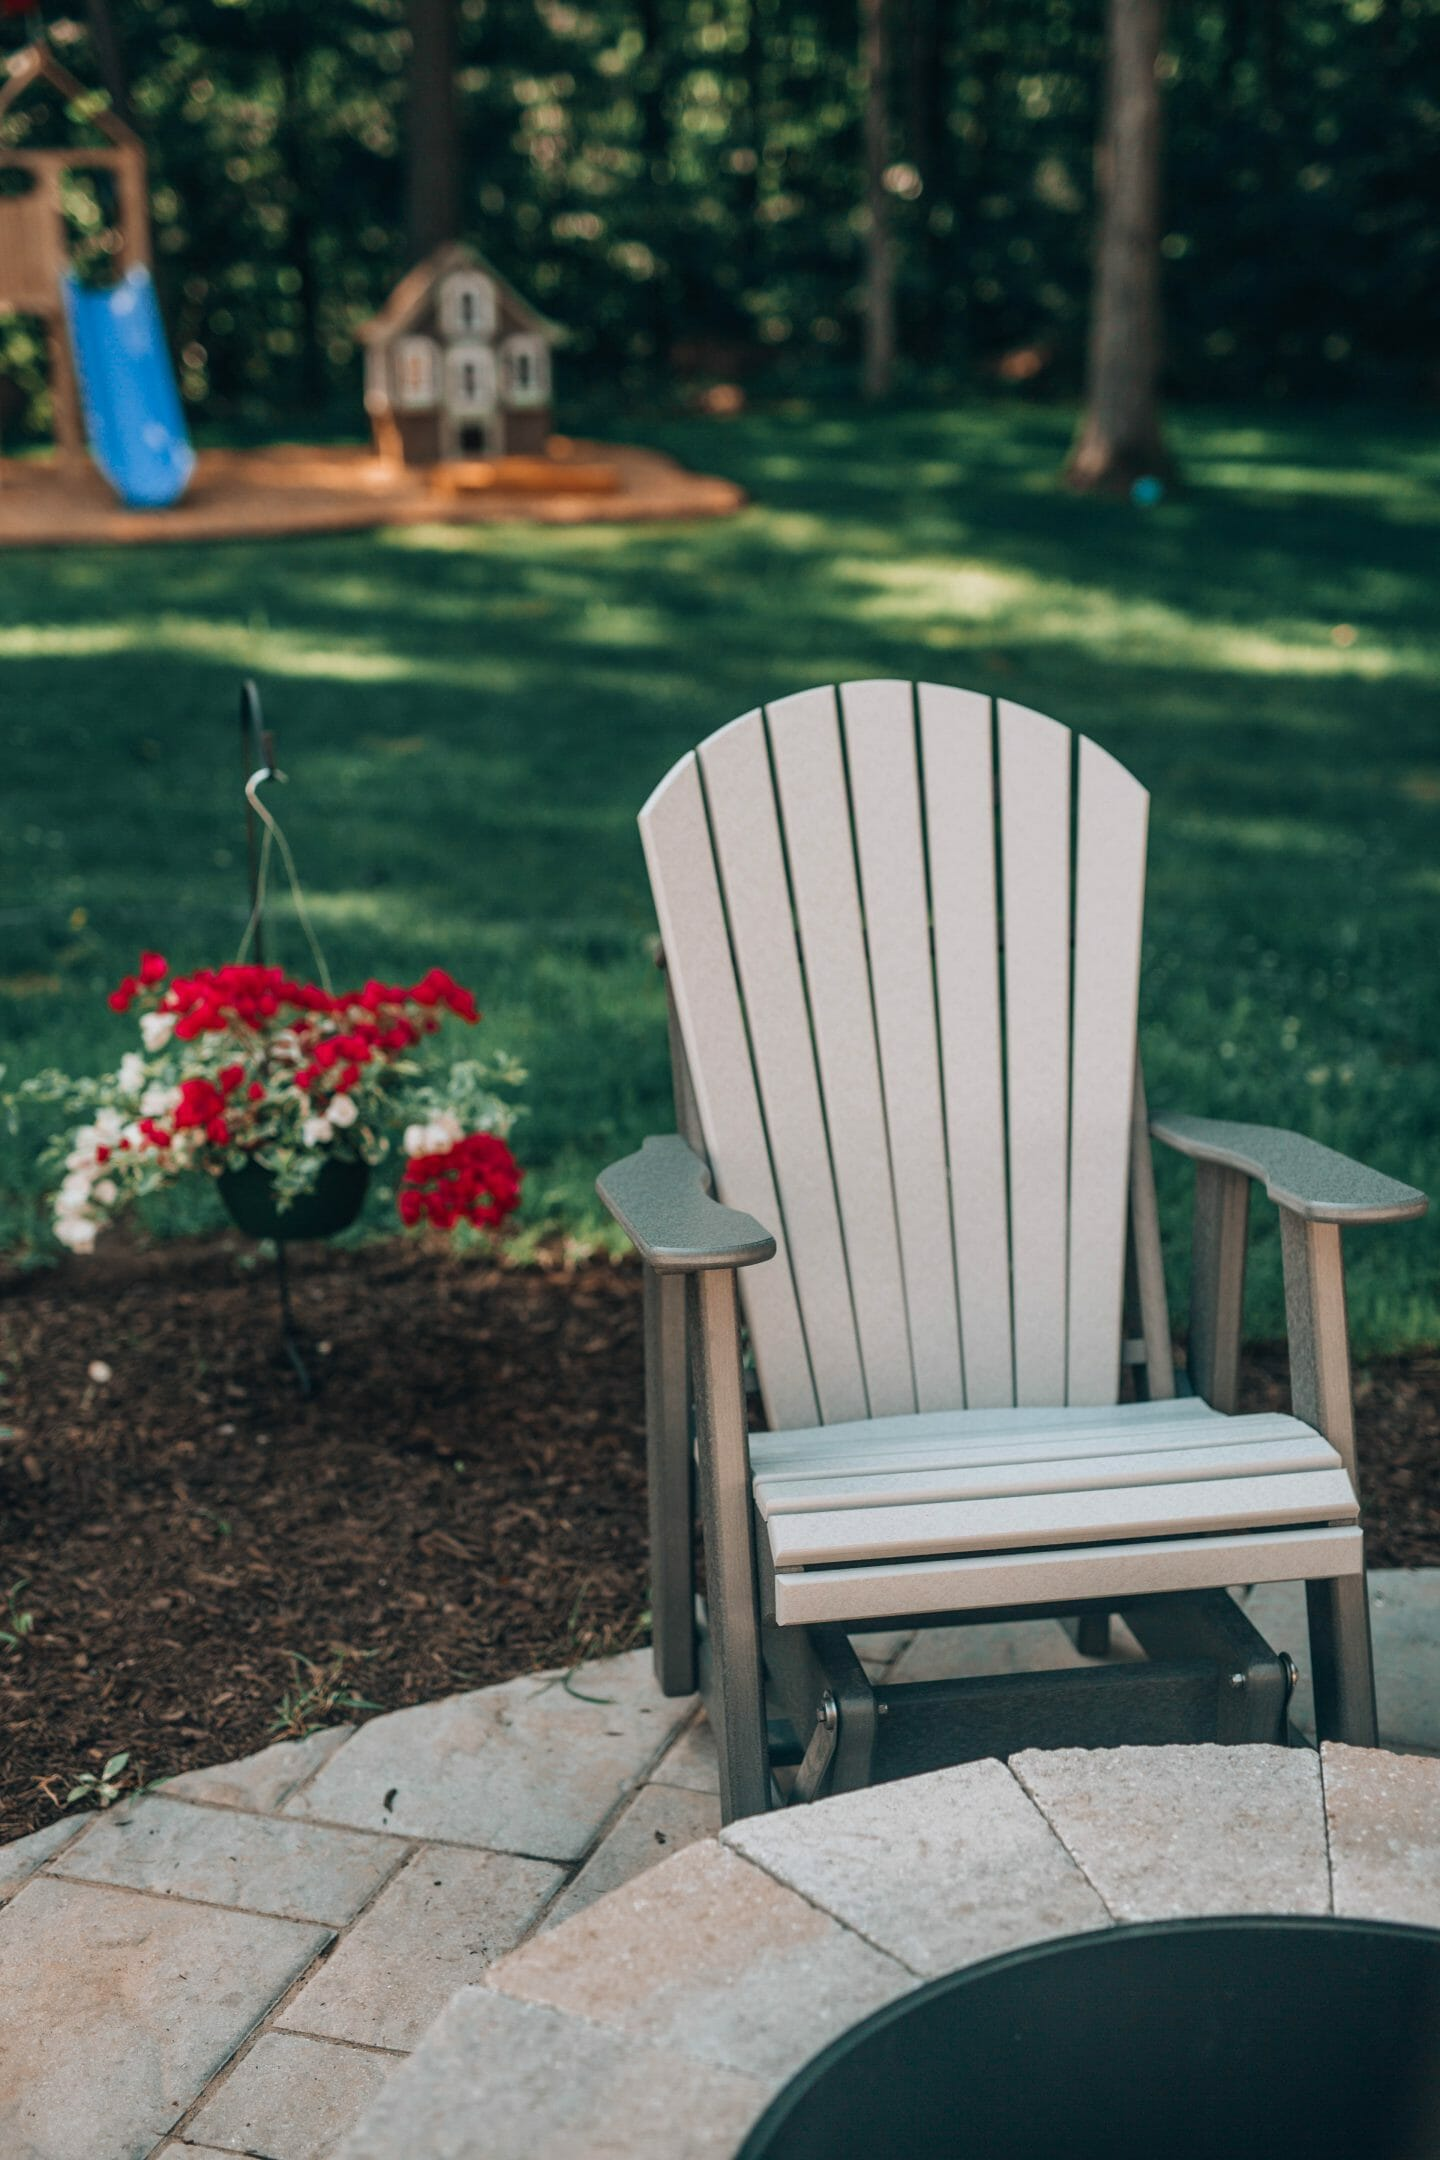 Our Backyard Makeover complete with before and after images!